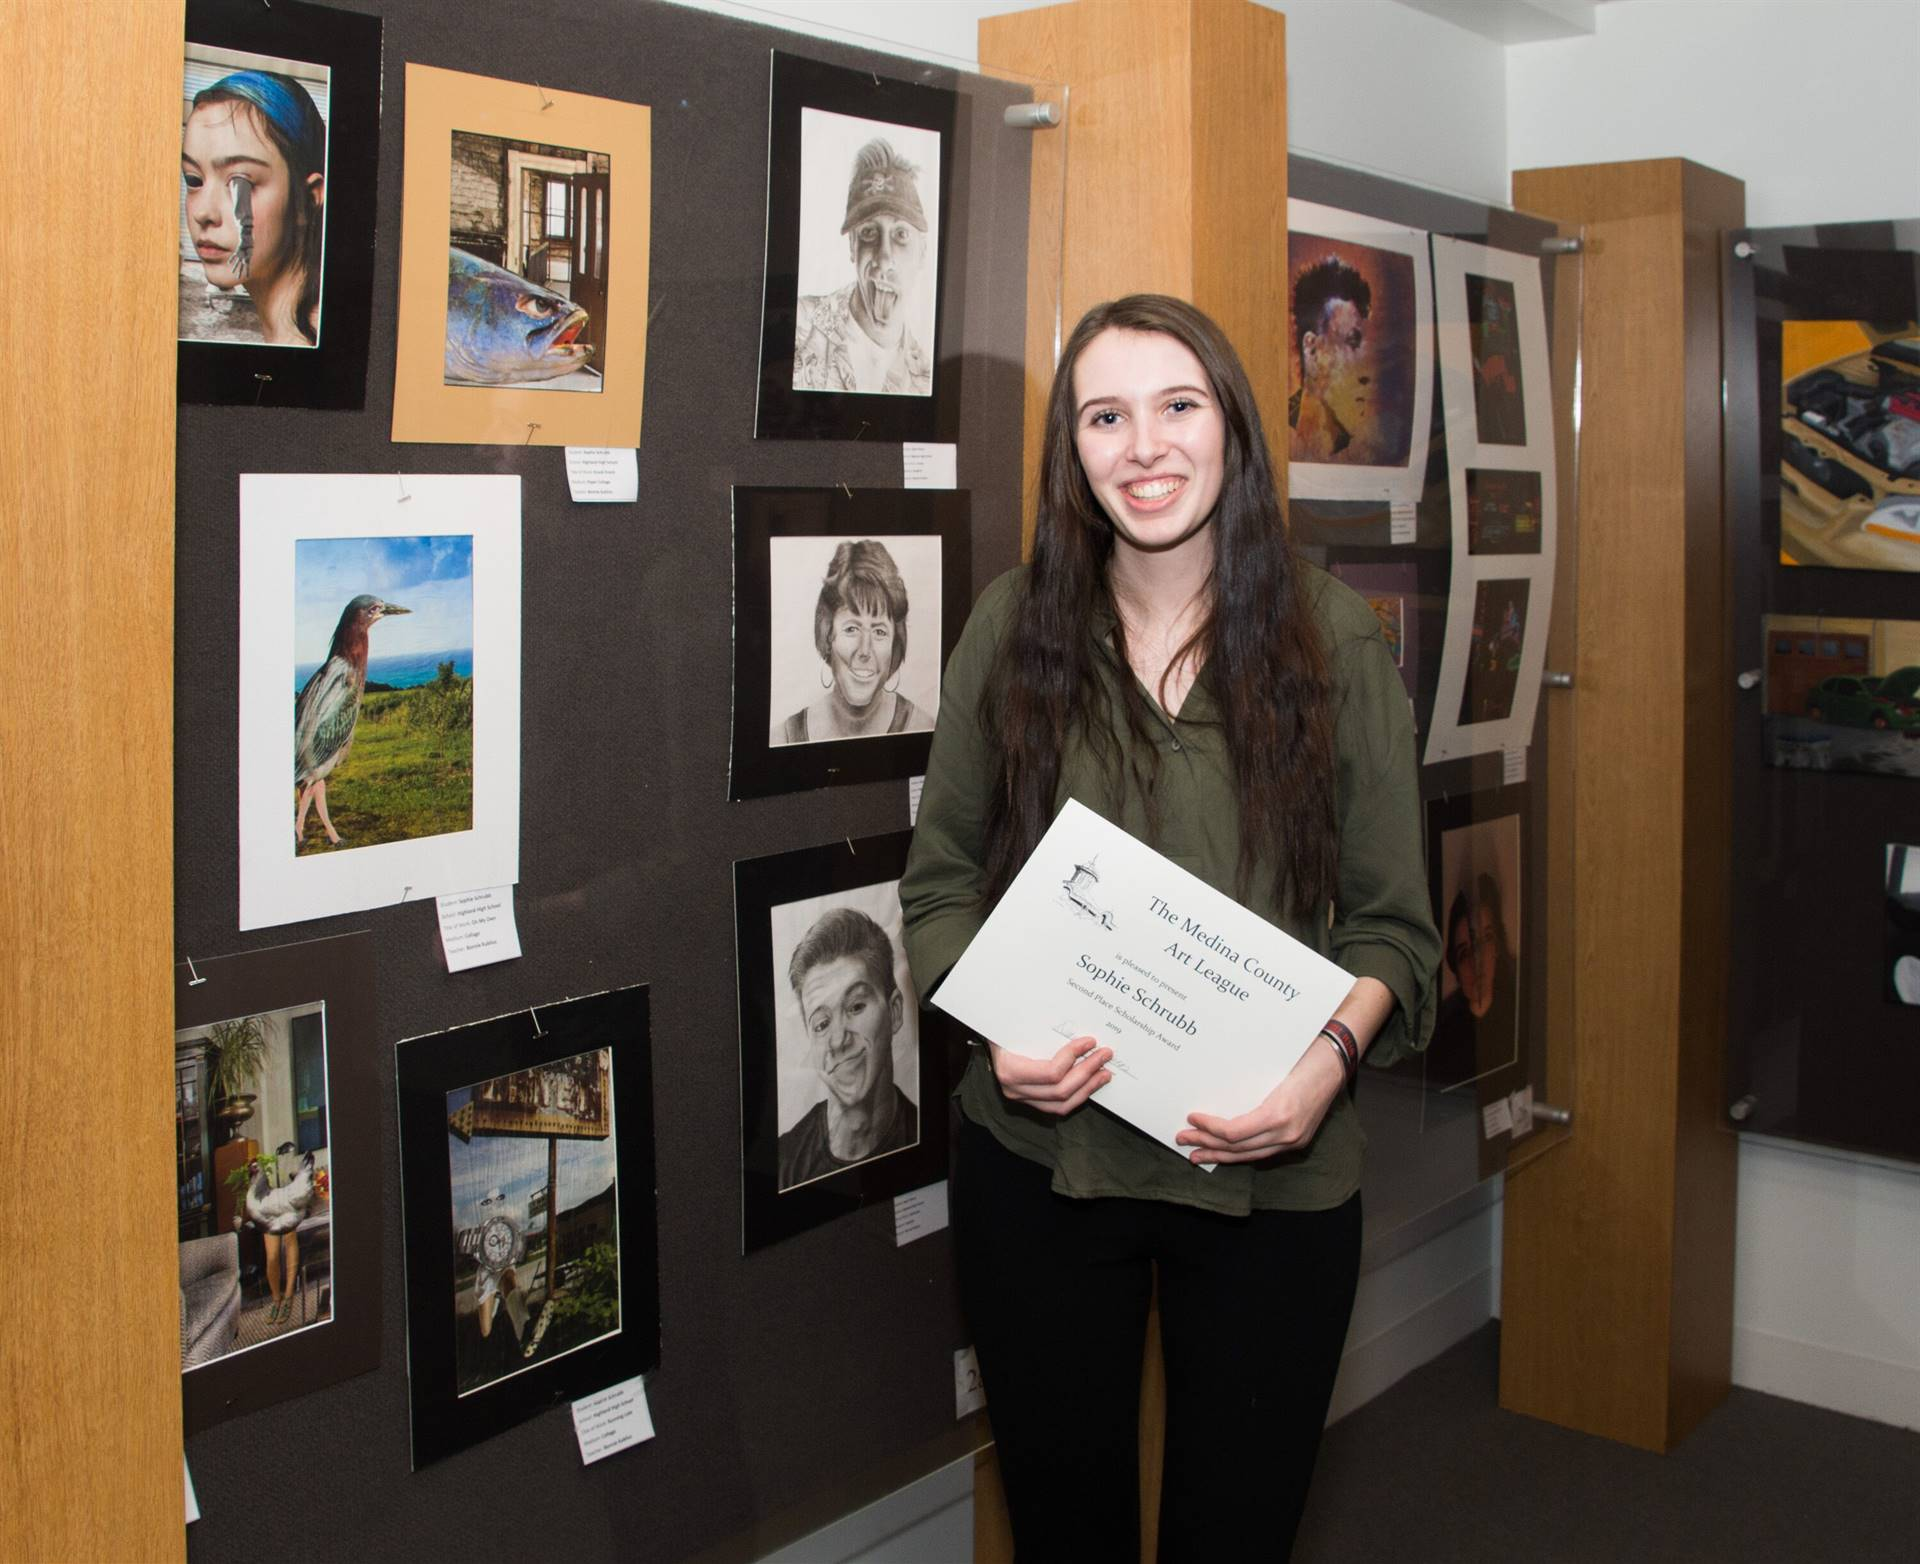 Sophie Schrubb, Second Place 2019 MCAL Scholarship Winner, with her artwork